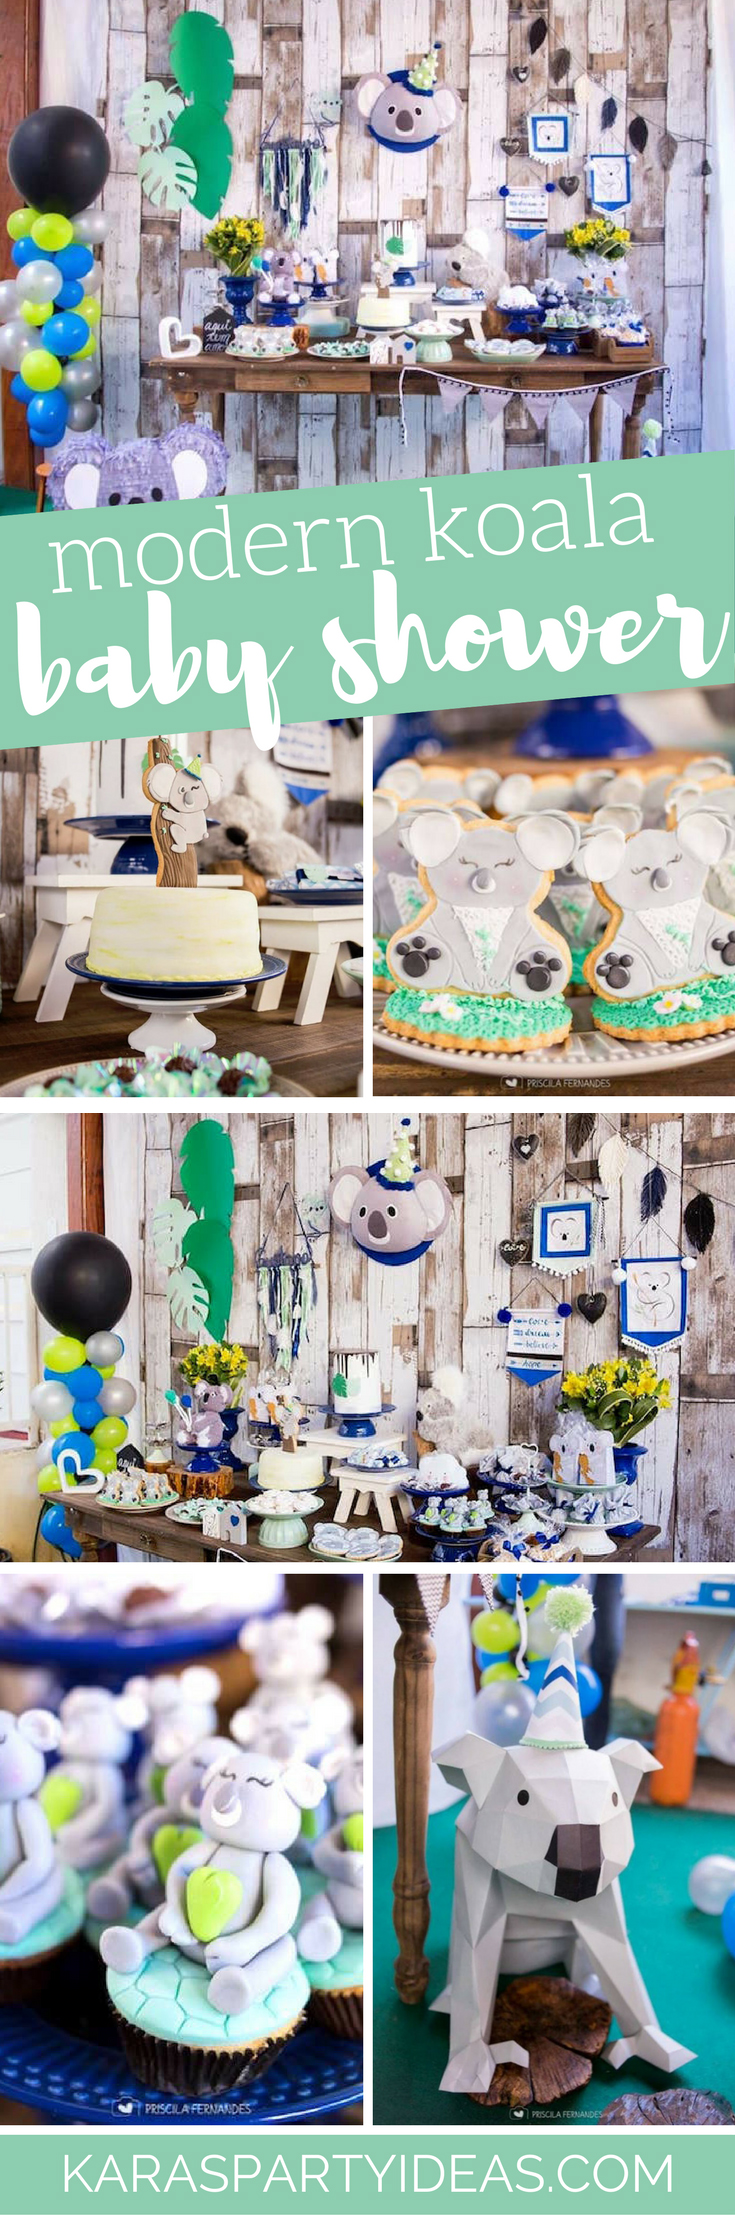 Modern Koala Baby Shower via Kara's Party Ideas - KarasPartyIdeas.com